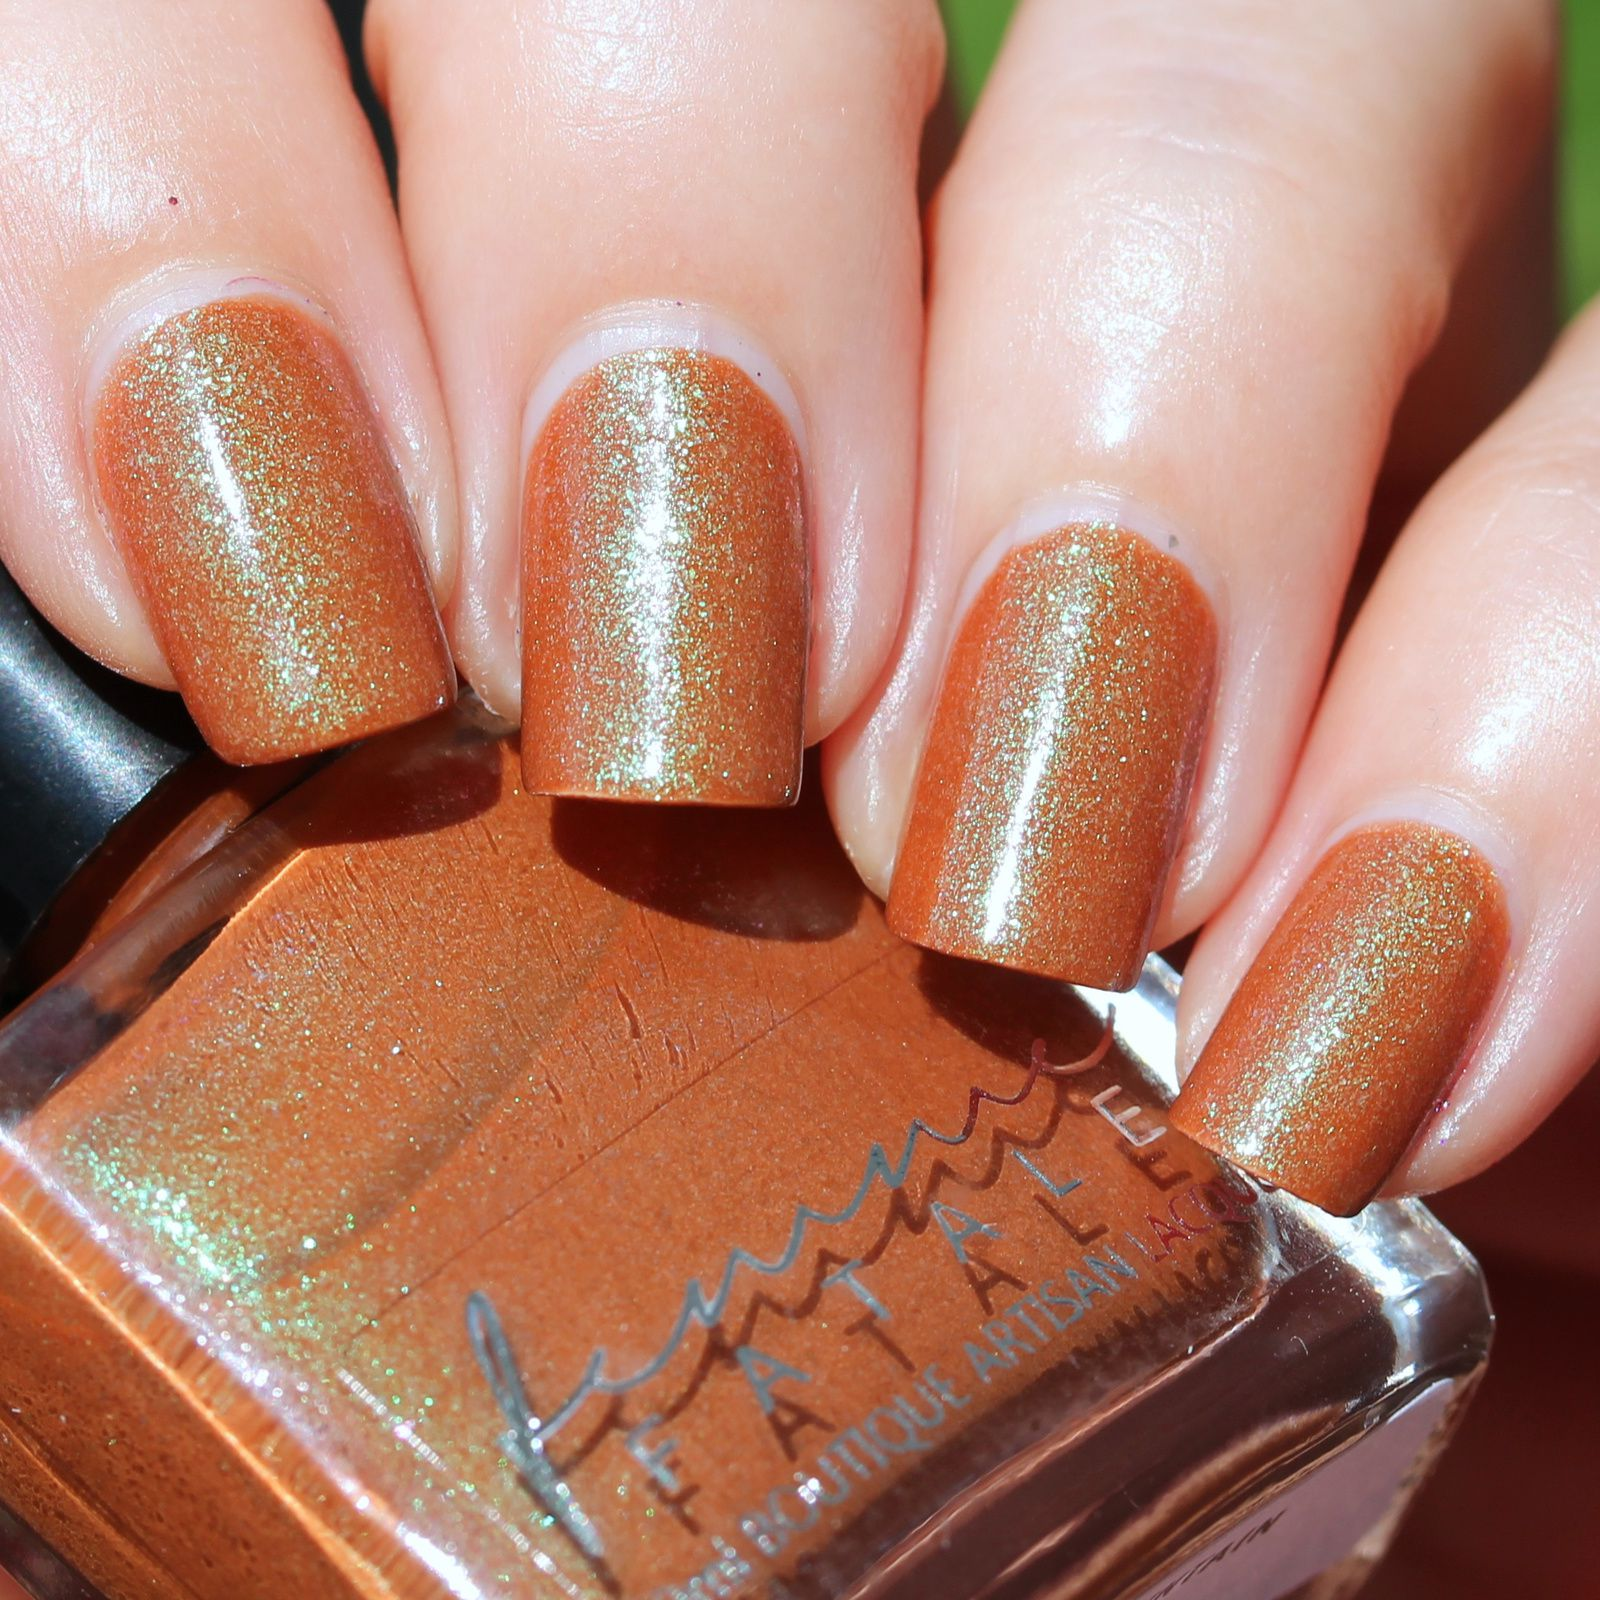 Femme Fatale Cosmetics - Lonely Mountain (2 coats, no top coat)